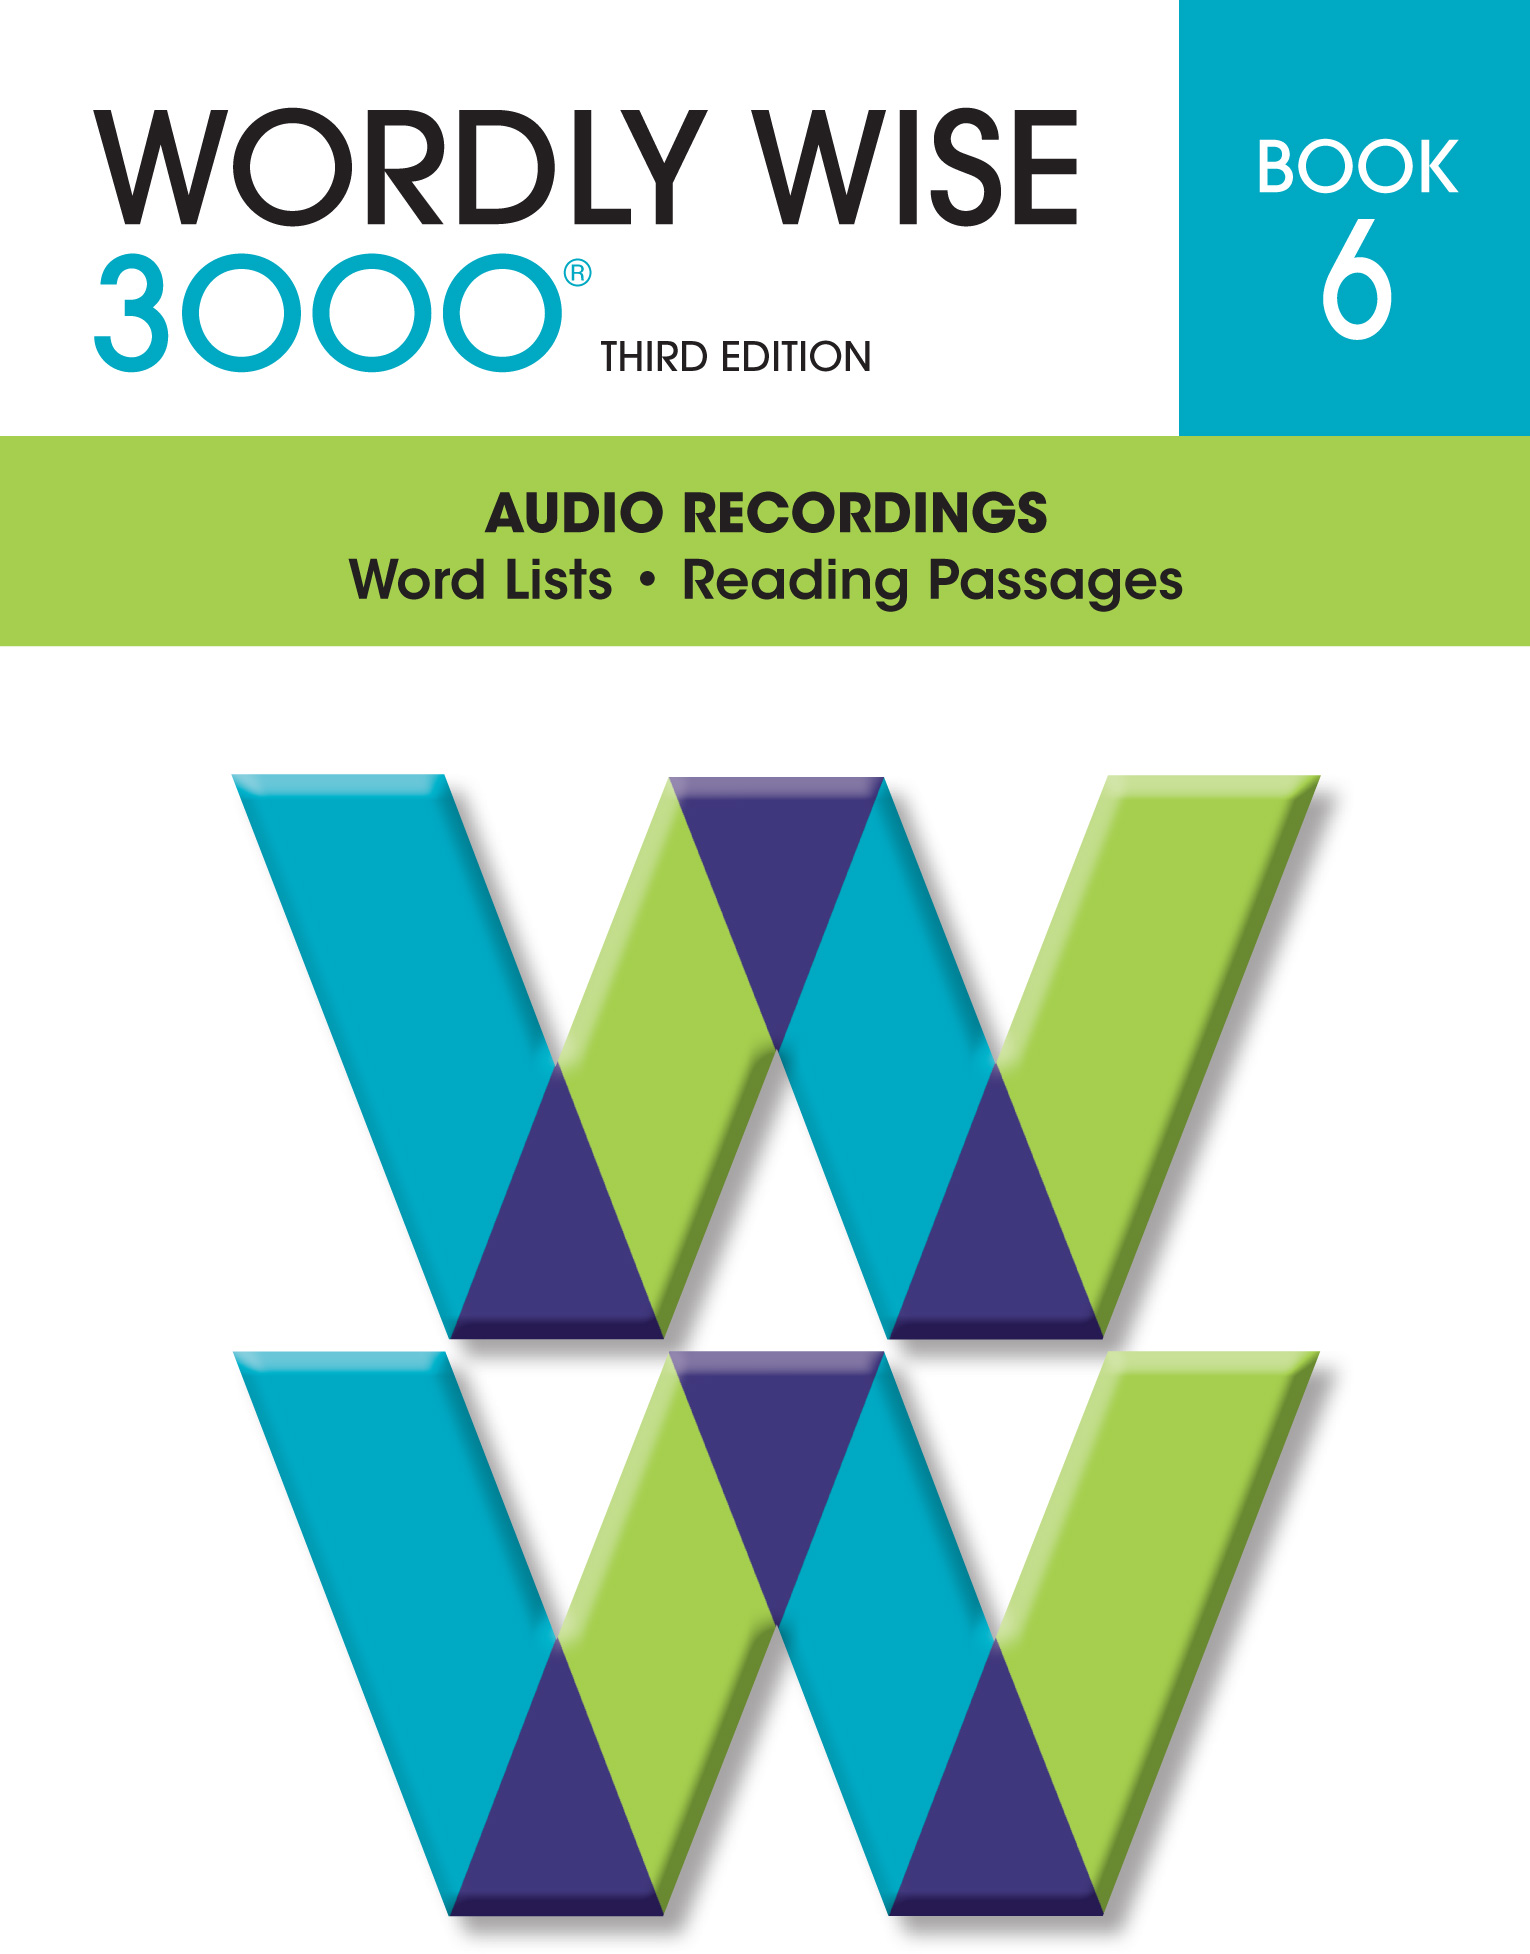 Wordly Wise 3000® 3rd Edition Audio CD Book 6 (Set of 3)